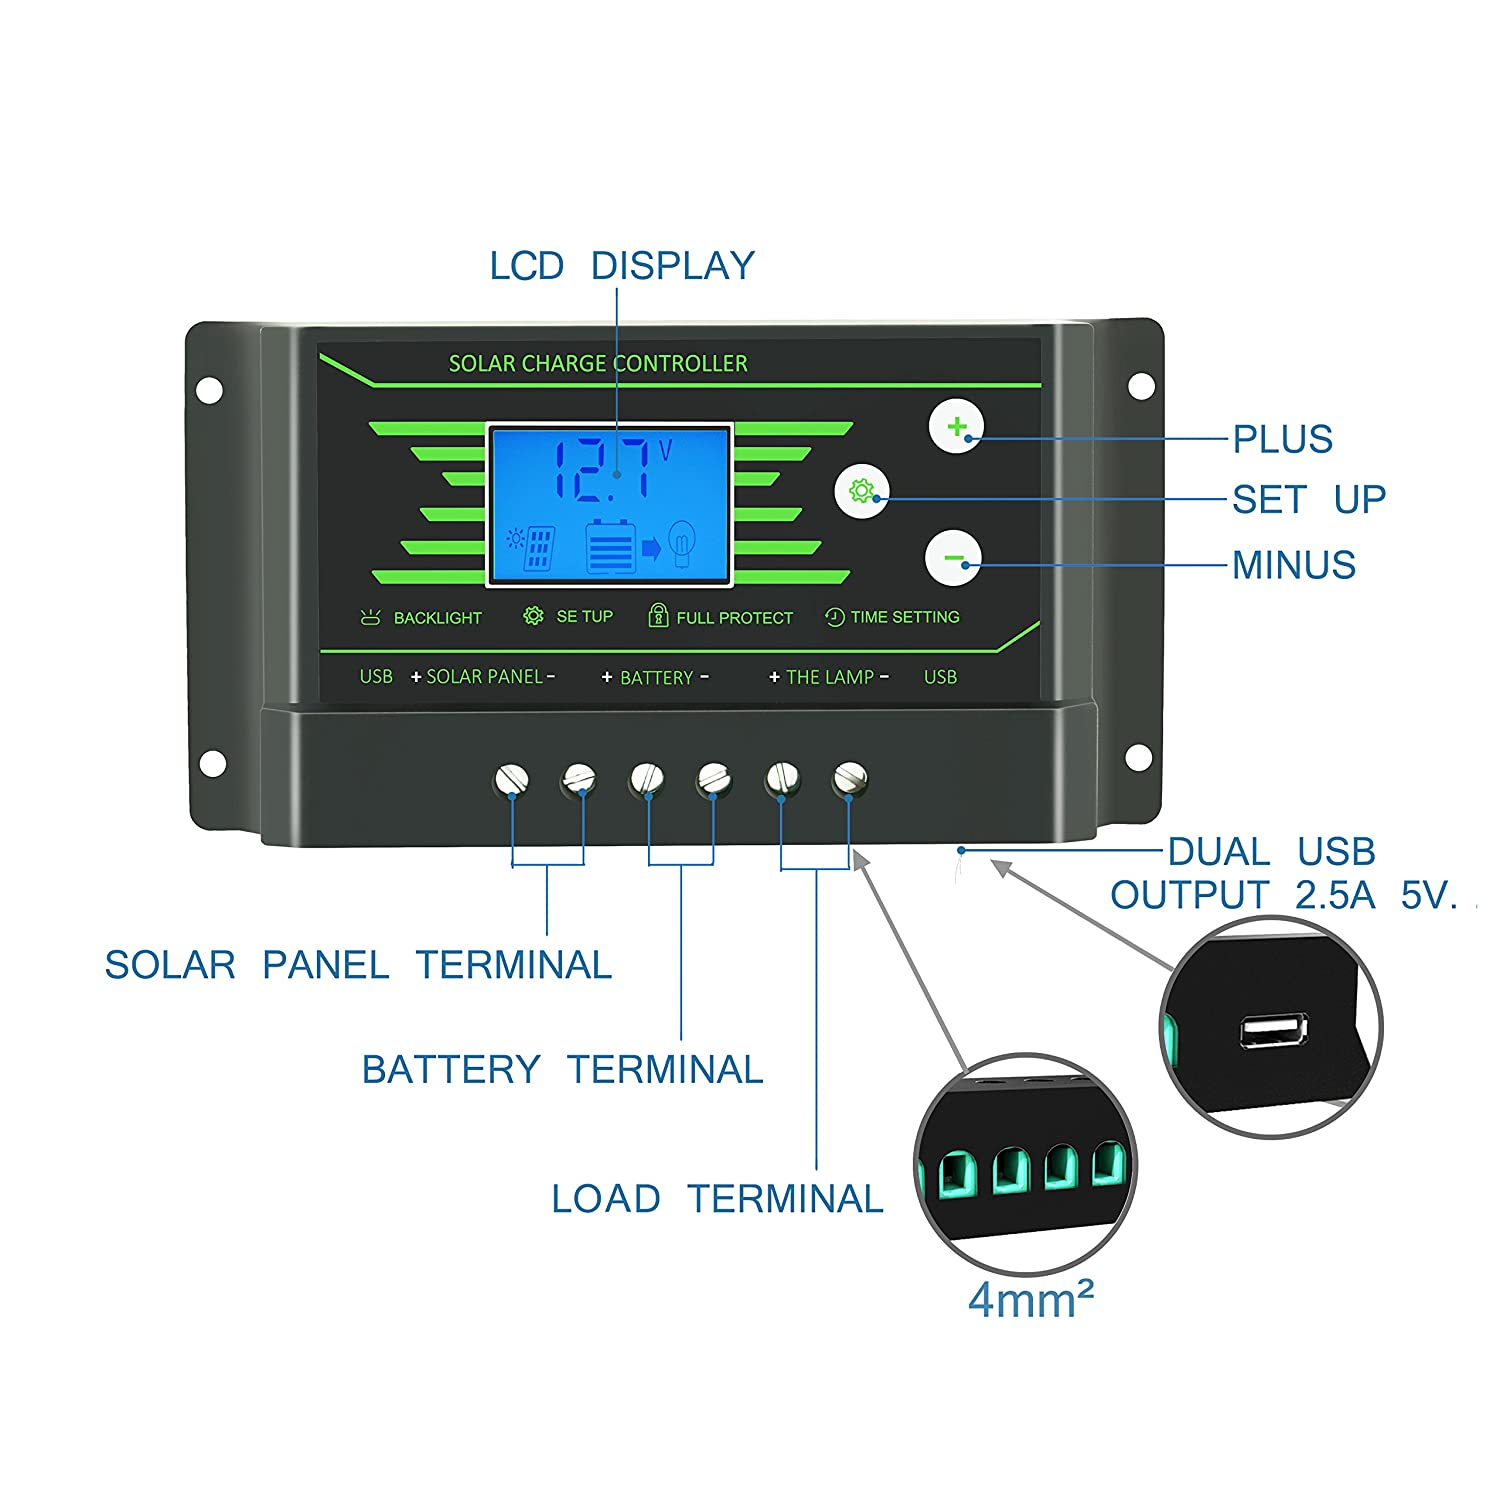 30a Solar Charge Controller Pwm 12v 24v Auto With Back 10a 12v24v Automatic Art Of Circuits Light Lcd Display 5v Dual Usb 30 Amp Regulator Charger Z30 Garden Outdoor